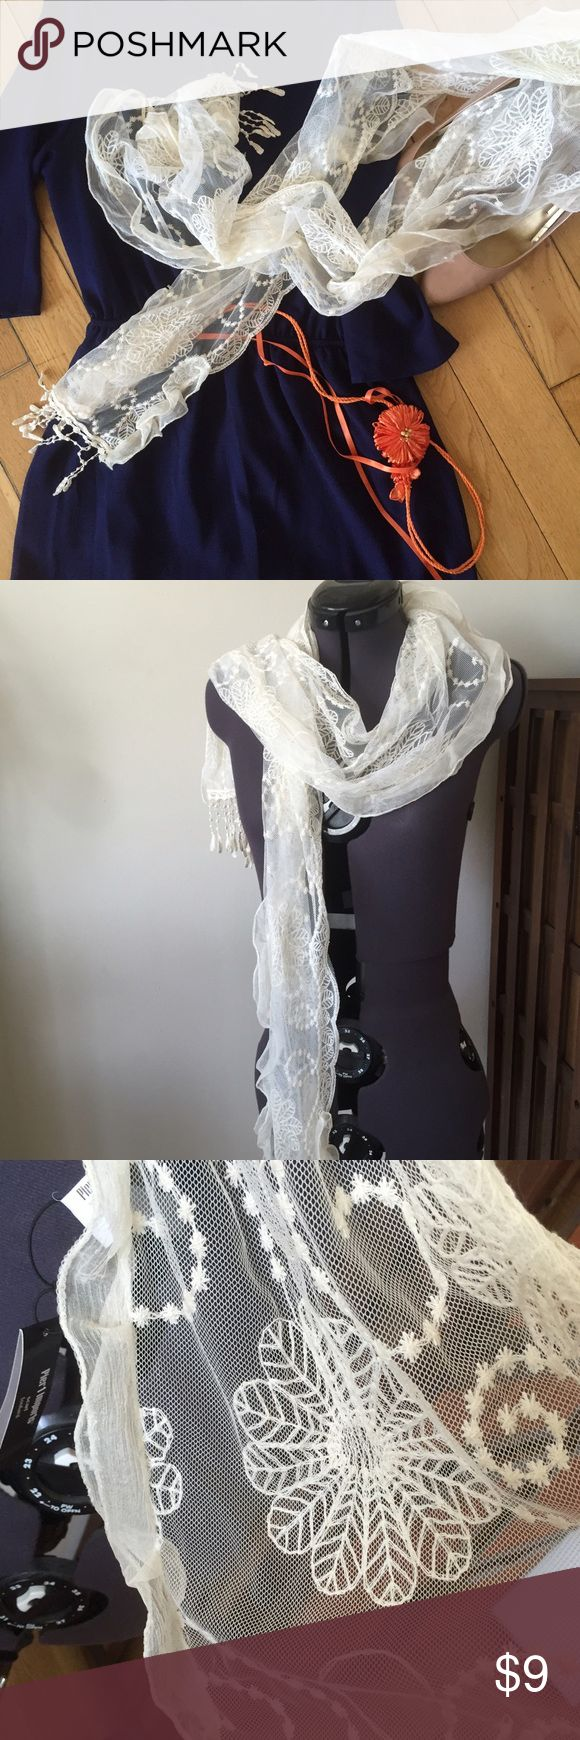 "Lace Floral-Pattern Scarf This cream scarf has small tassels dangling from both ends, and is a wonderful light scarf for transitioning into fall! Randomly, it's from Pier 1 Imports . Dimensions are 12"" x 66"". Pier 1 Accessories Scarves & Wraps"